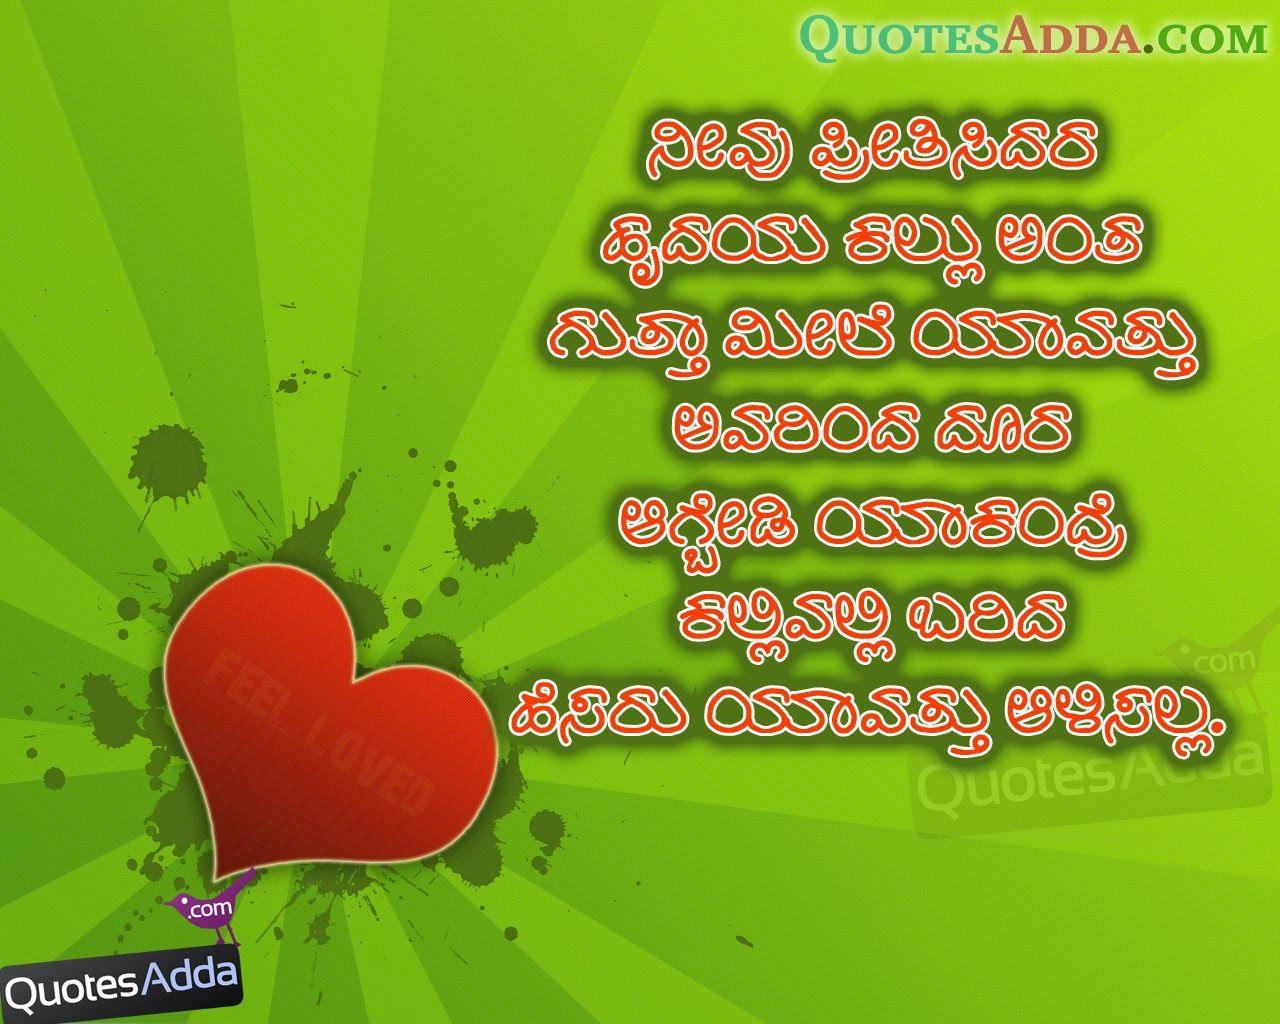 Kannada Love Failure Quotes Images Images Wall Papers